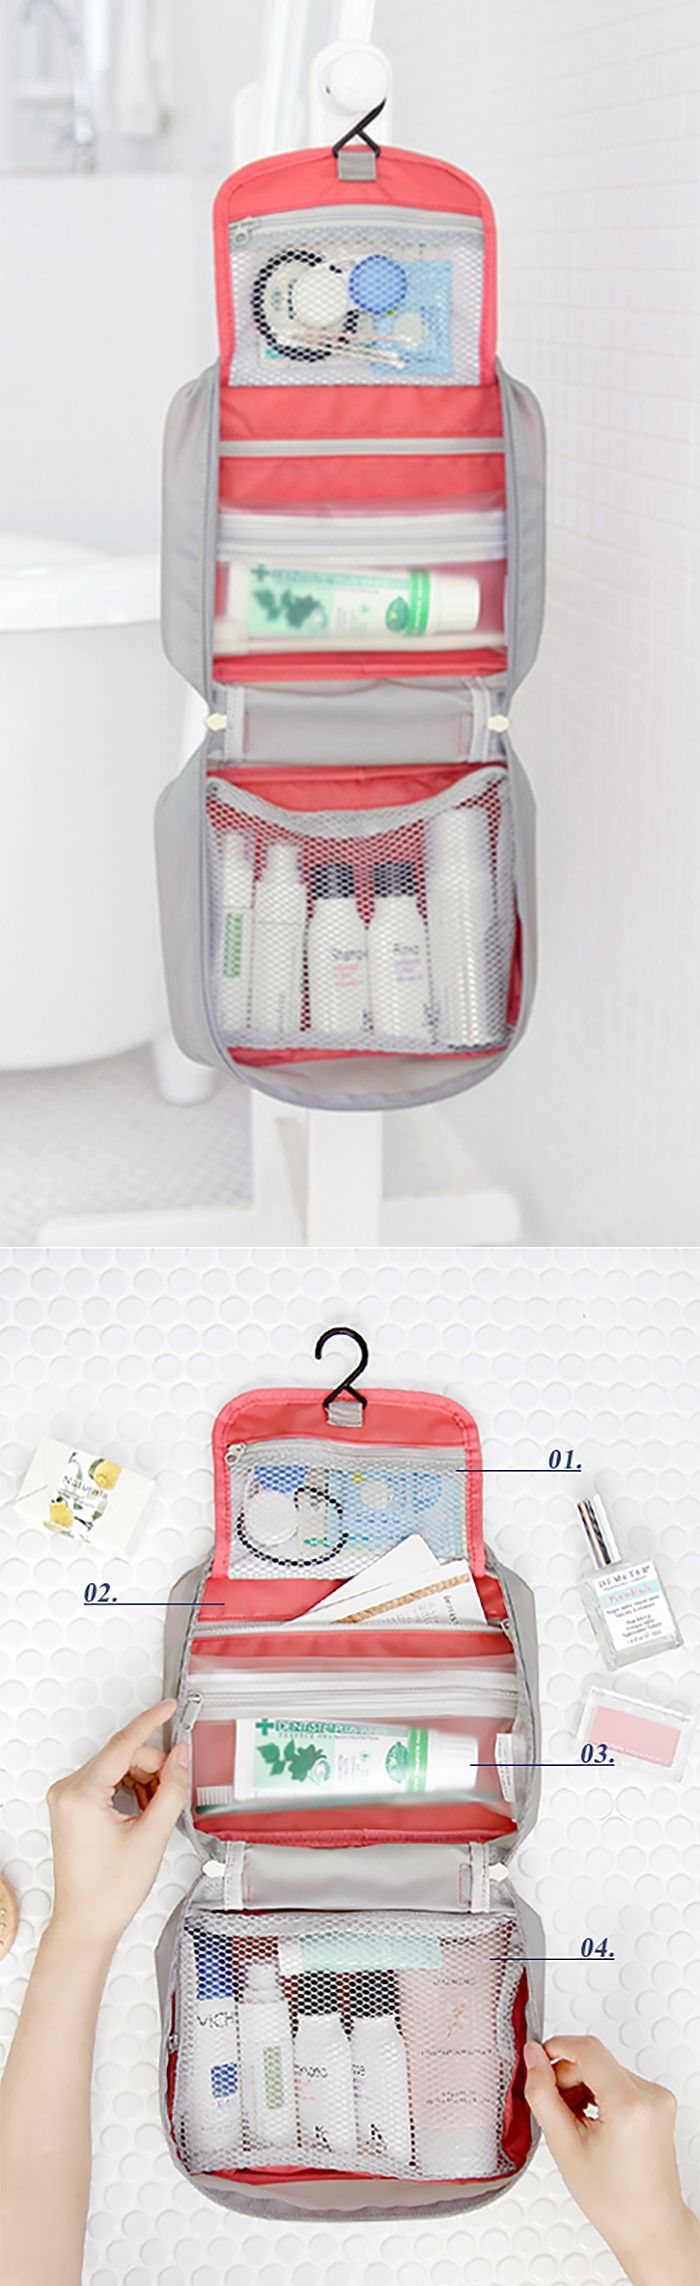 While compact for travel, the Wind Blows Toiletry Bag transforms into a hanging toiletry organizer. This pouch contains 1.mini mesh pocket, 2.hidden pocket, 3.detachable pouch and 4.main mesh pocket. The bag is made of ripstop fabrics that use a special reinforcing technique that makes them resistant to tearing, as well as, being water resistant! With a handle attached and a hook for hanging, this bag is the ultimate convenient travel companion!